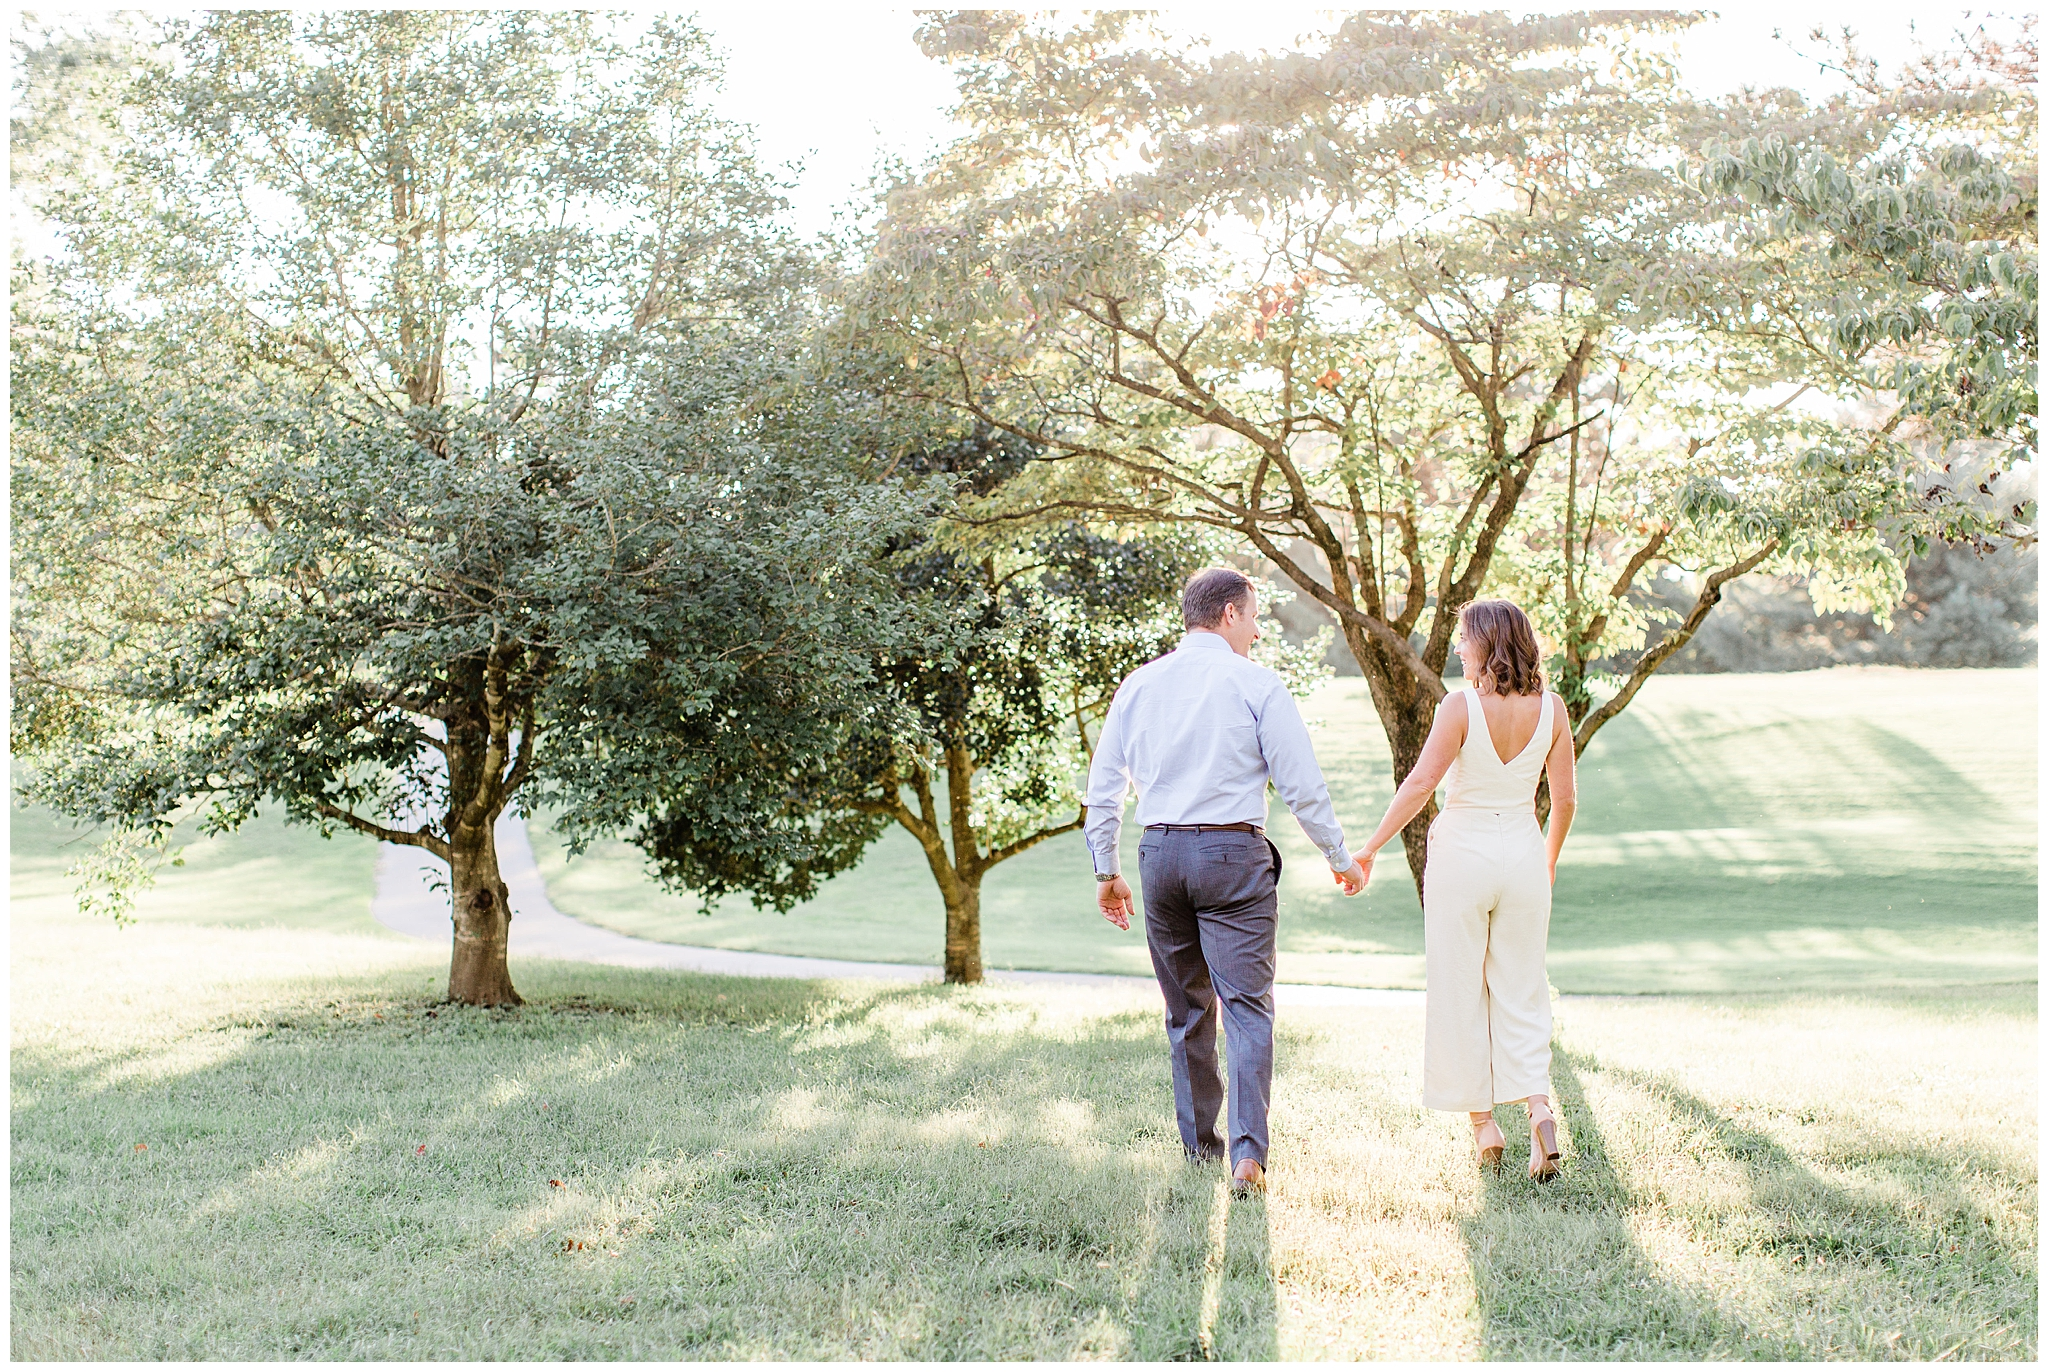 This 2018 engagement session is one that photographer dreams are made of. We did this session at the beautiful Cherokee Park in Louisville, KY. The trees mixed with the beautiful golden sunlight made this session one for the books. Also Jonathan is one of the funniest grooms I've ever photographed and it made this session so fun. I hope you all enjoy, their wedding will be on the blog soon as they got married in April 2019.